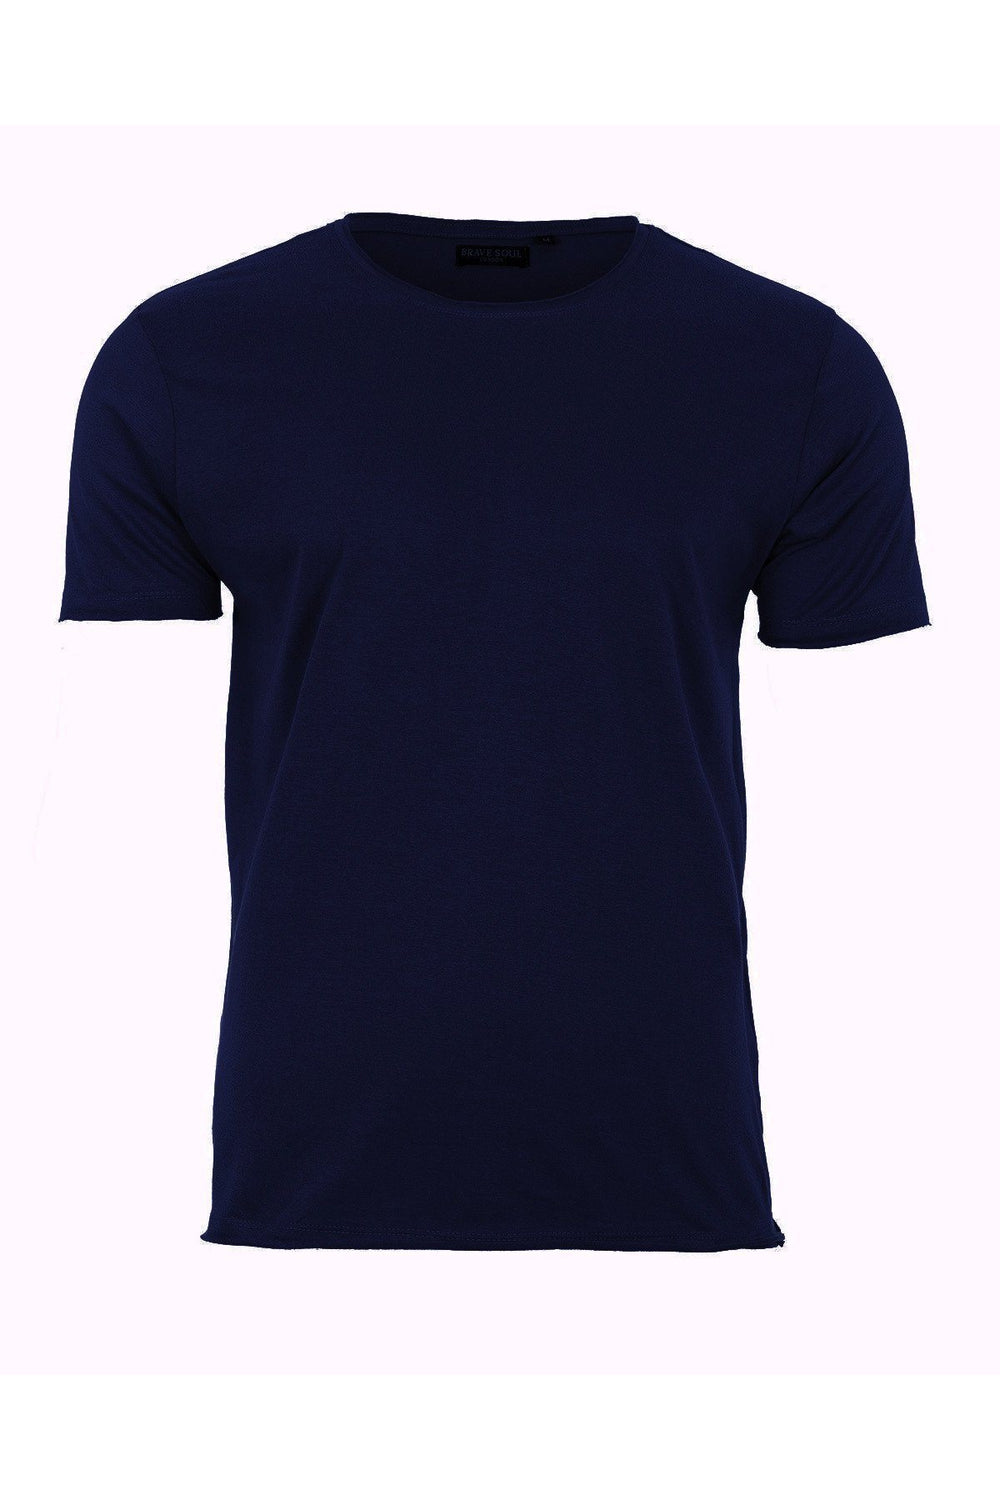 T-Shirts - Cutoff T-Shirt Navy